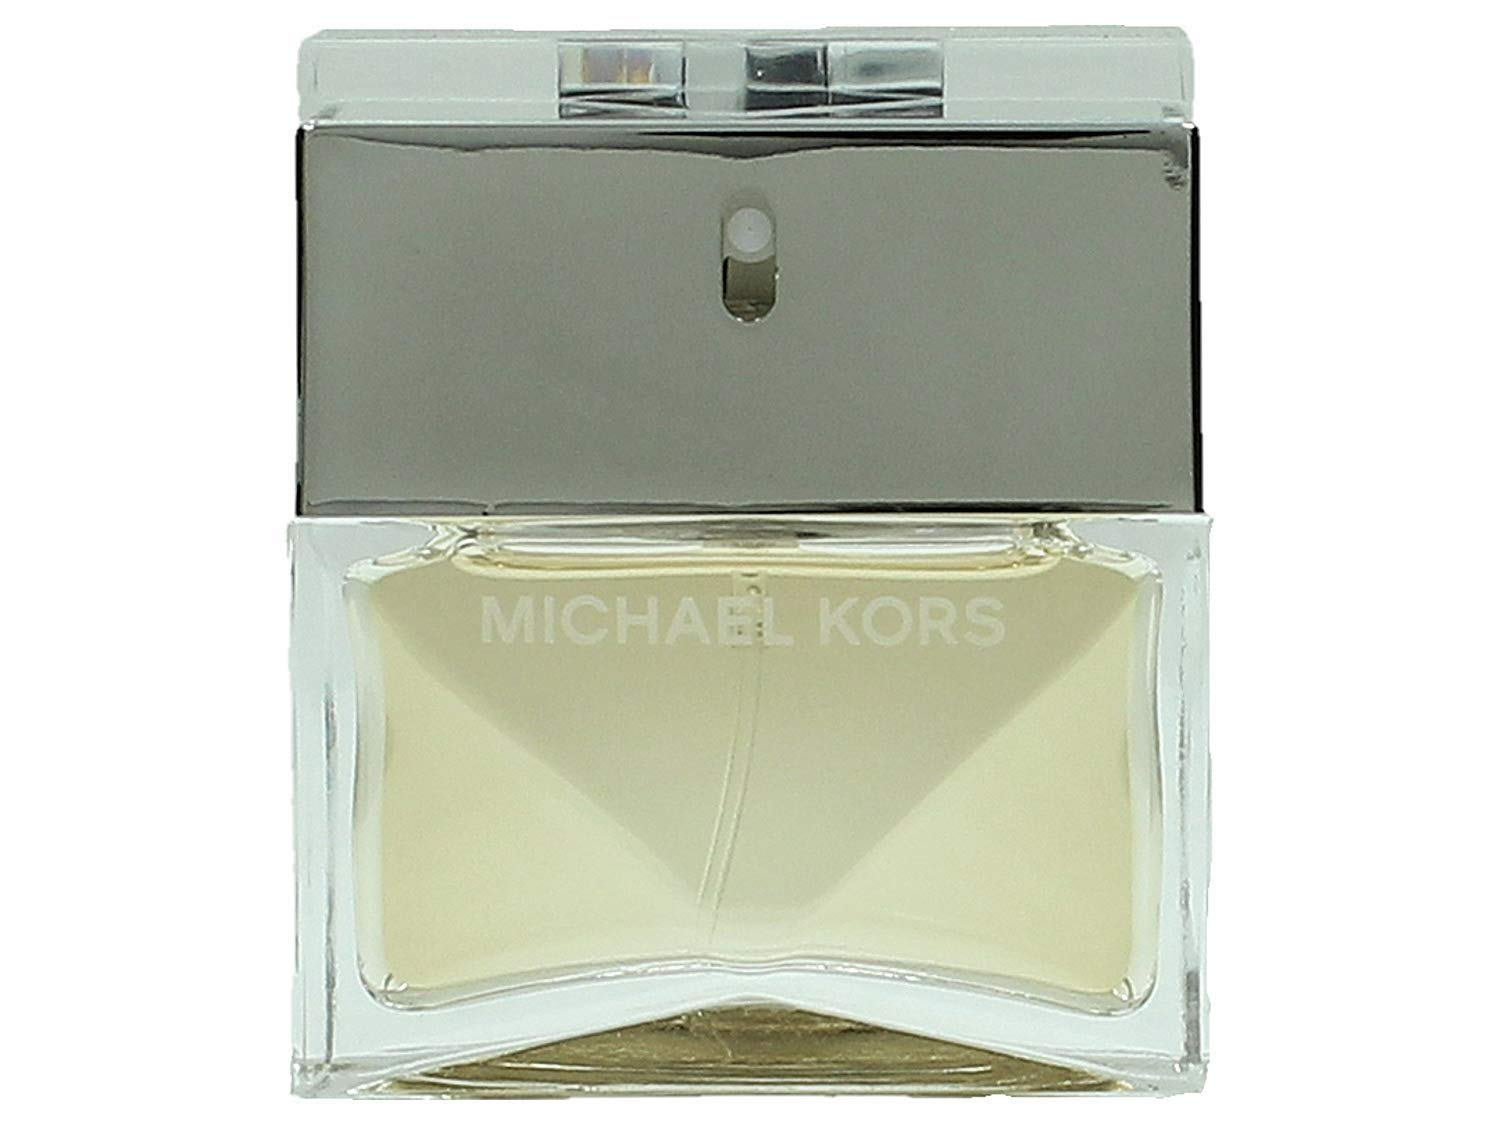 Michael Kors Eau de Parfum Spray for Women, 1 Ounce